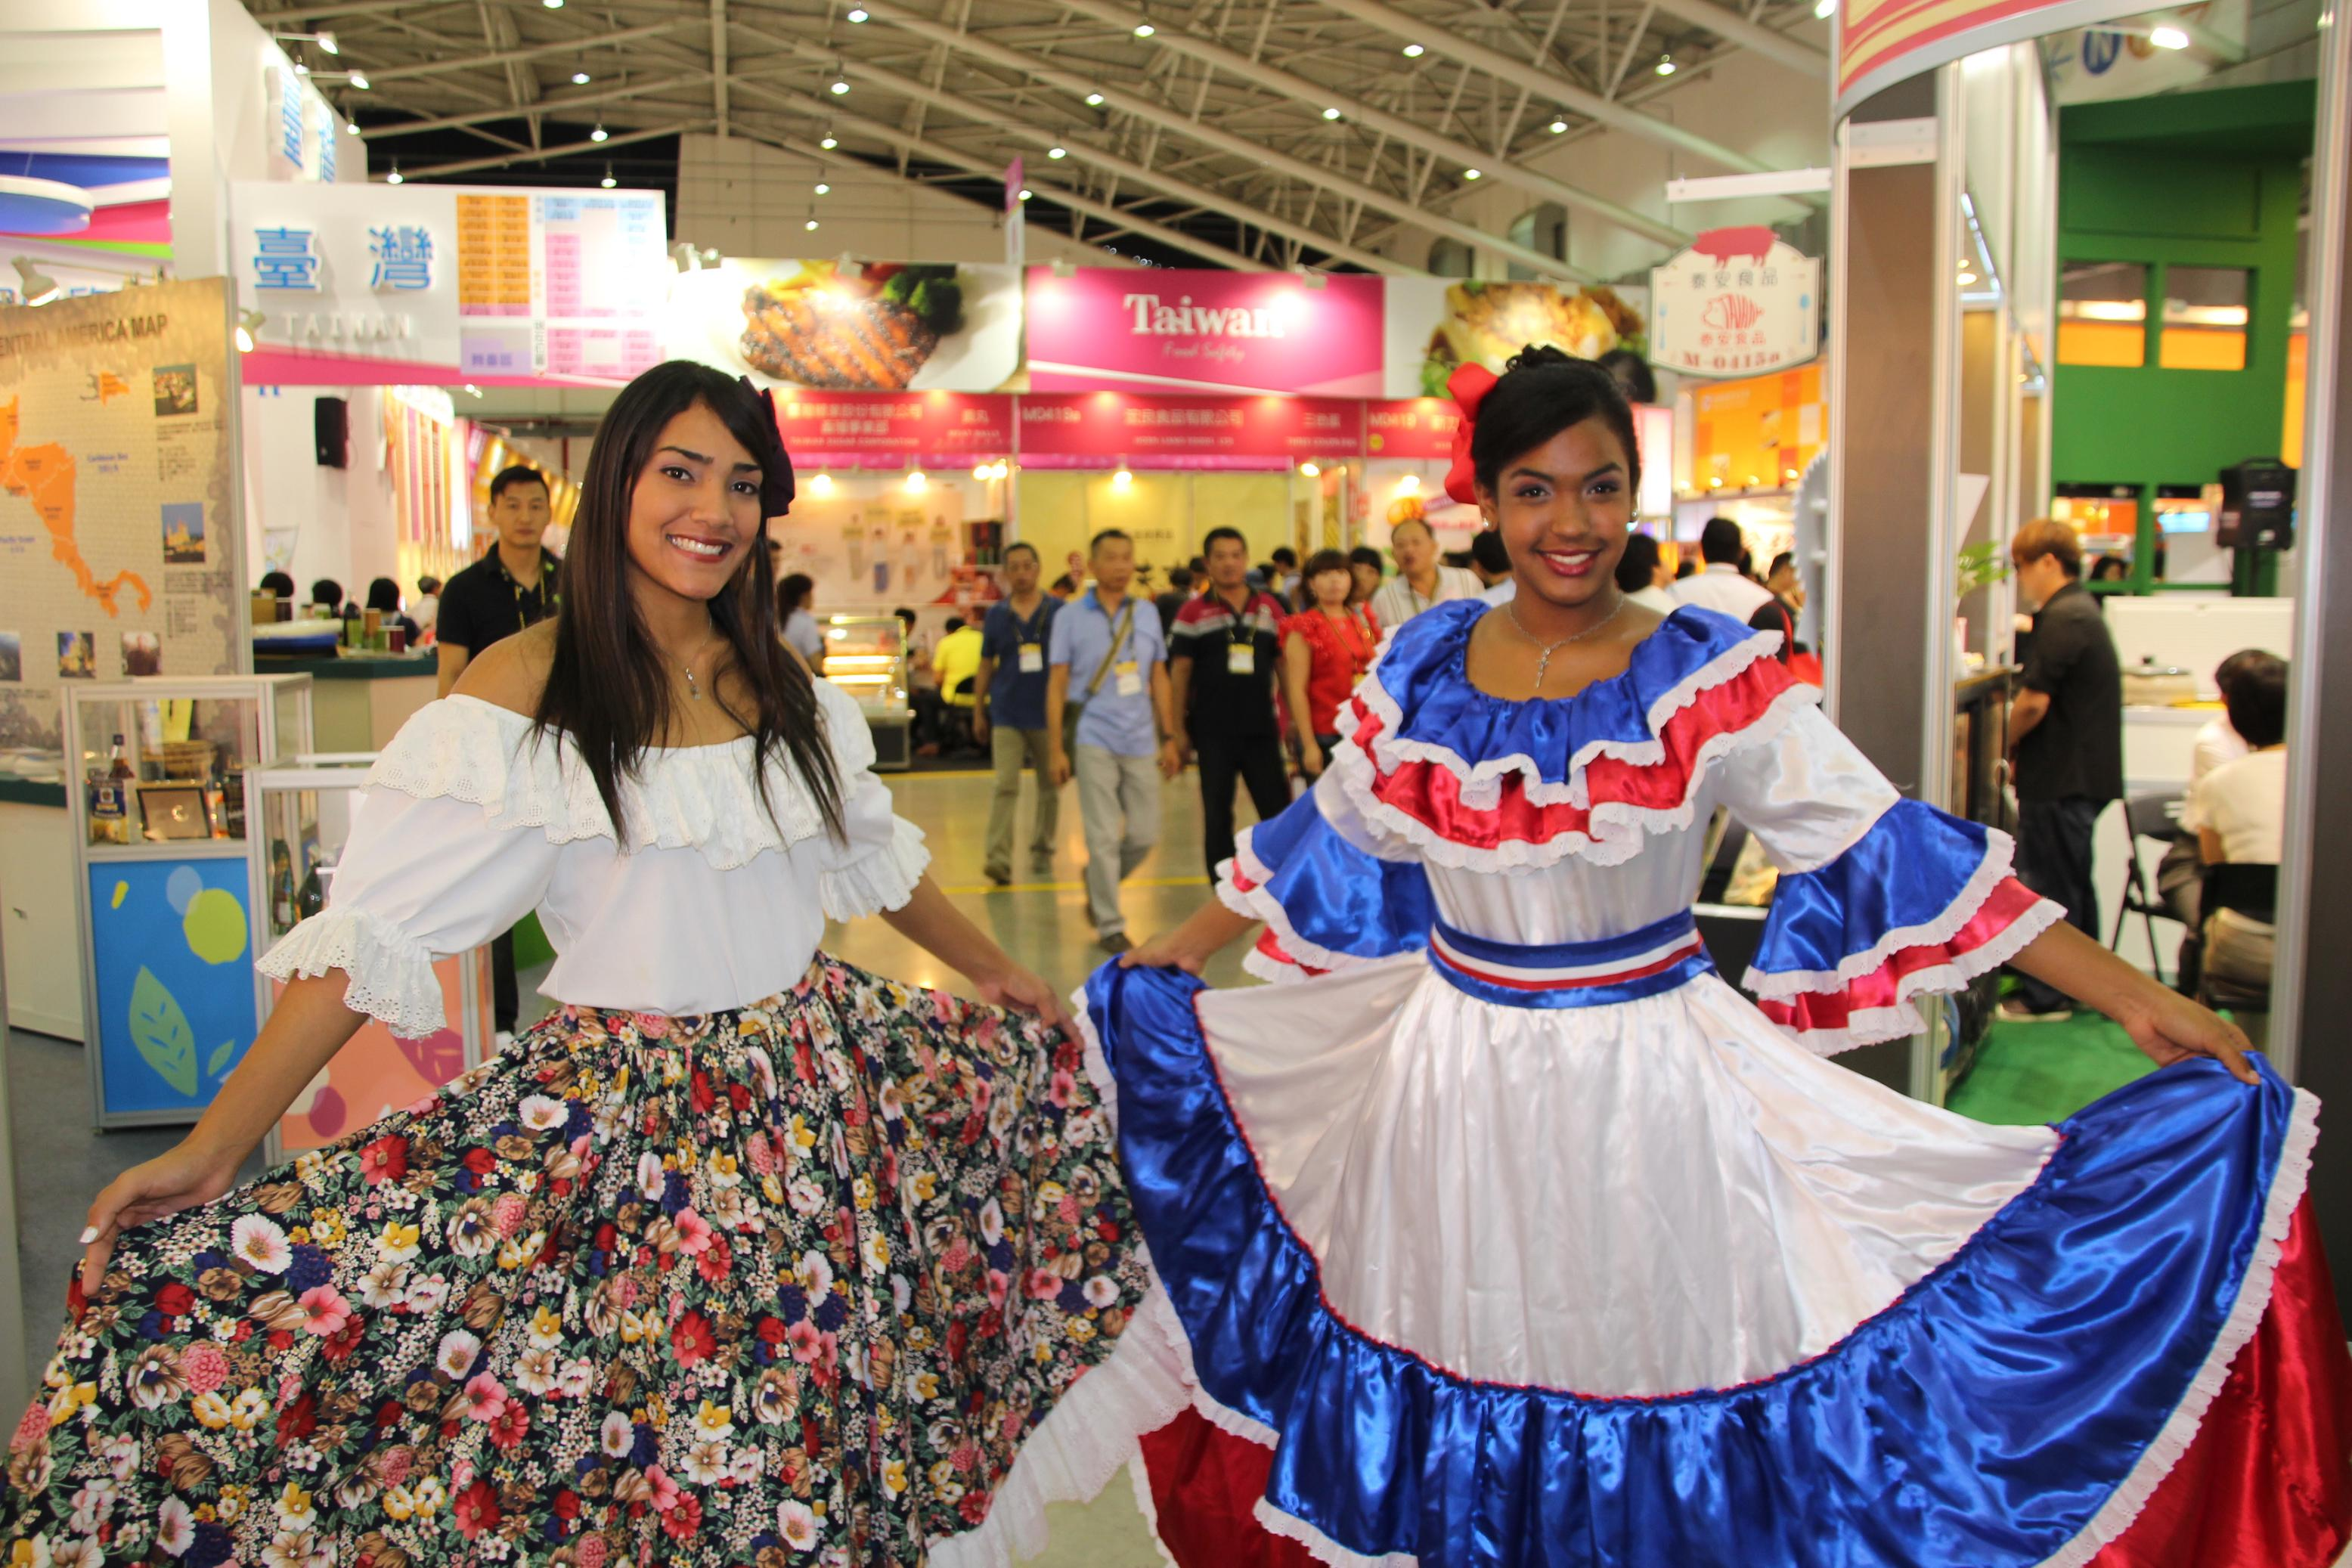 Dominican girls dressed in folkloric dance costume welcome visitors to the Dominican Republic booth at the 2015 Taipei International Food Show on Thur